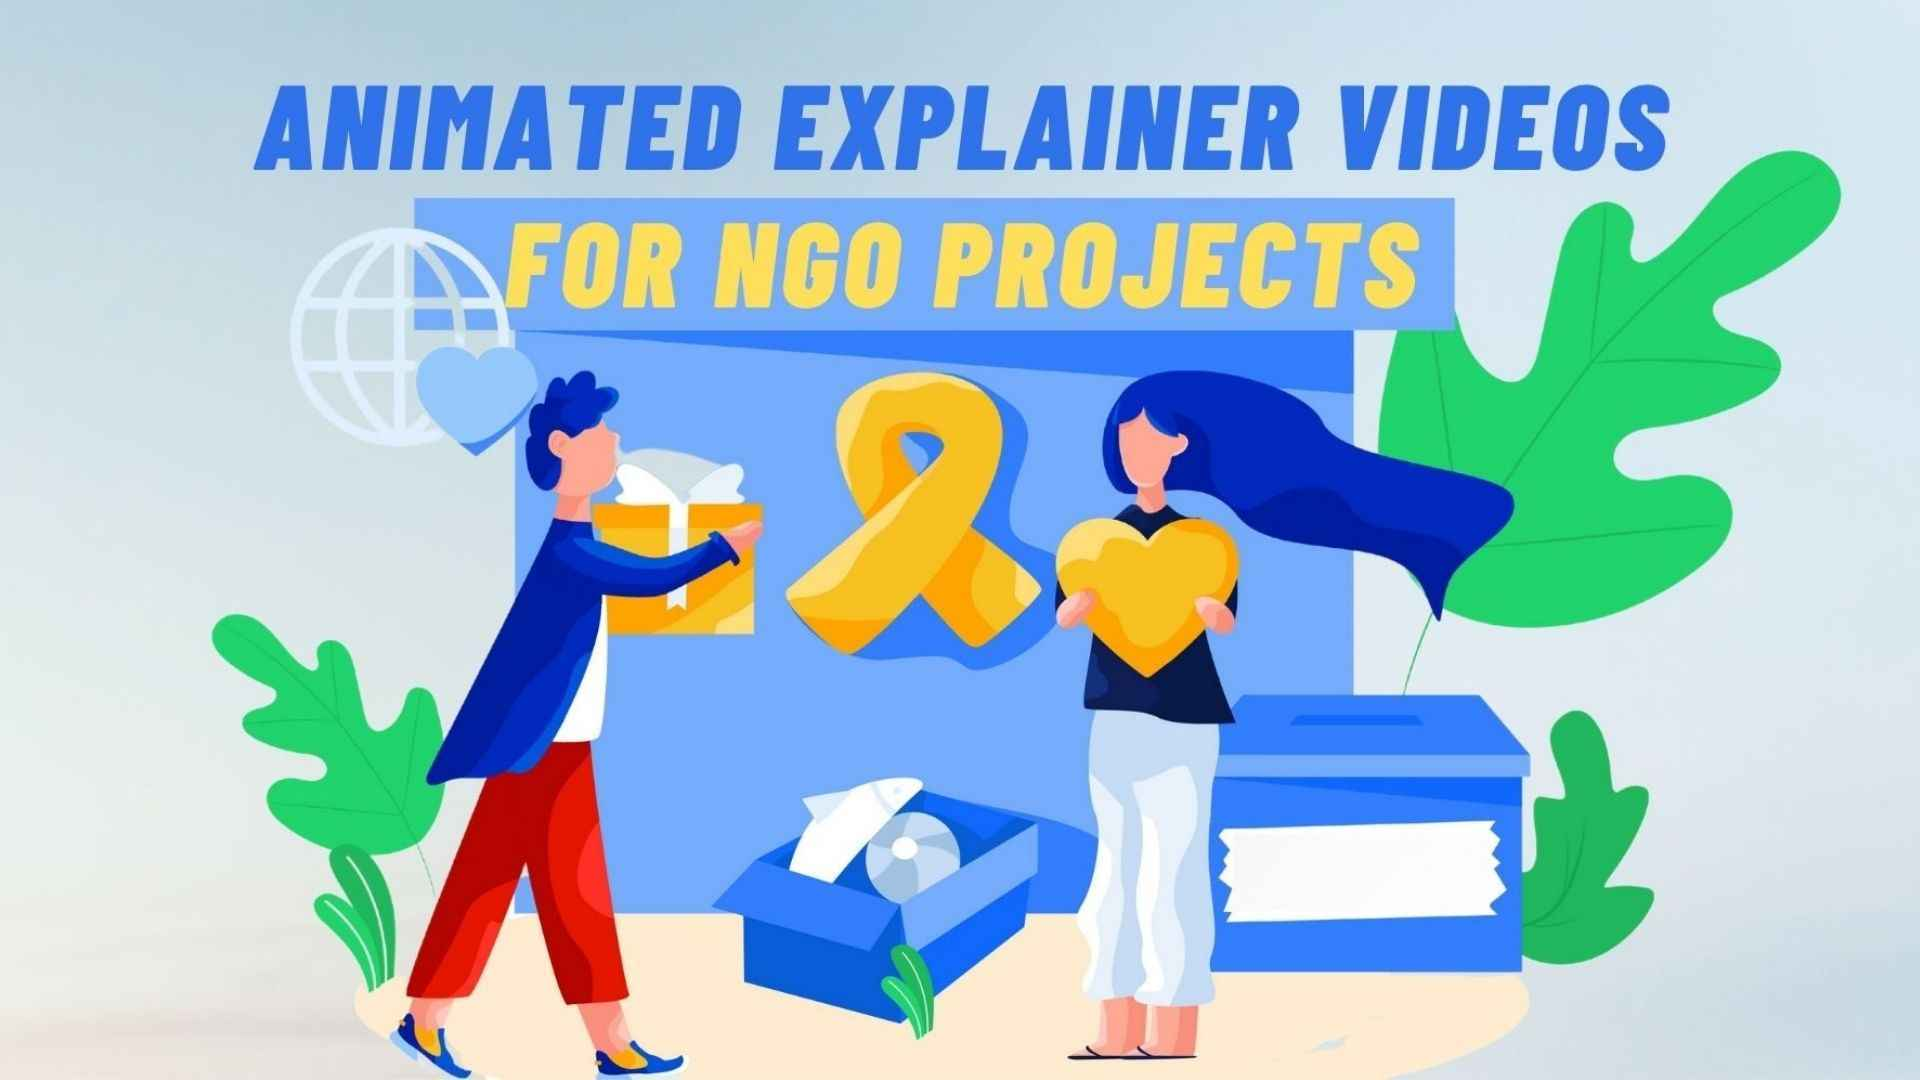 Animated Explainer Videos for NGO Projects